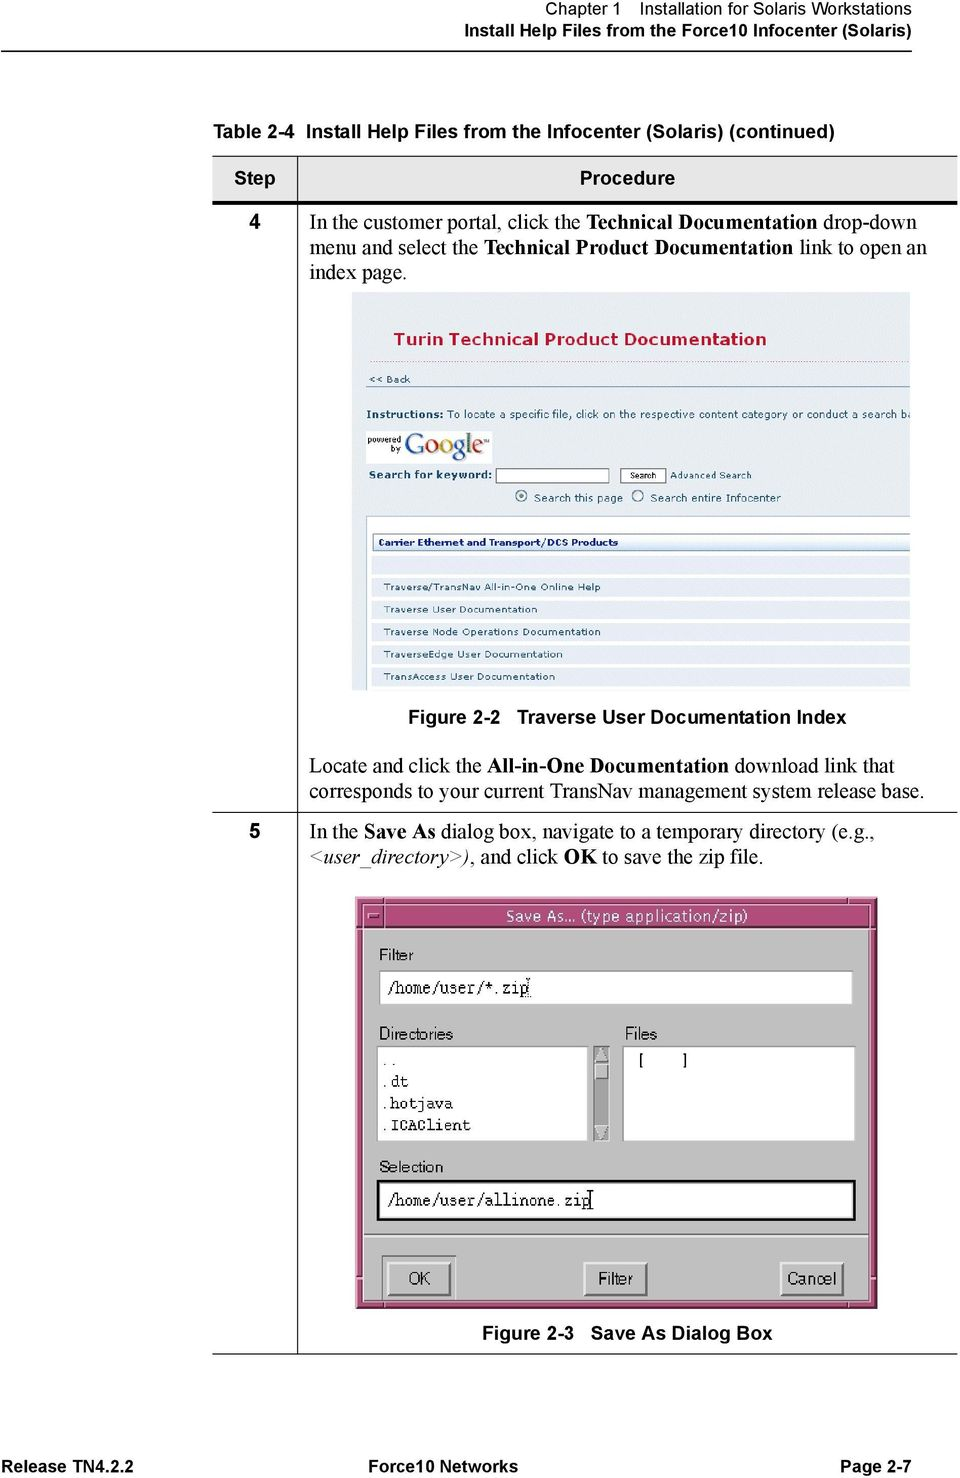 Figure 2-2 Traverse User Documentation Index Locate and click the All-in-One Documentation download link that corresponds to your current TransNav management system release